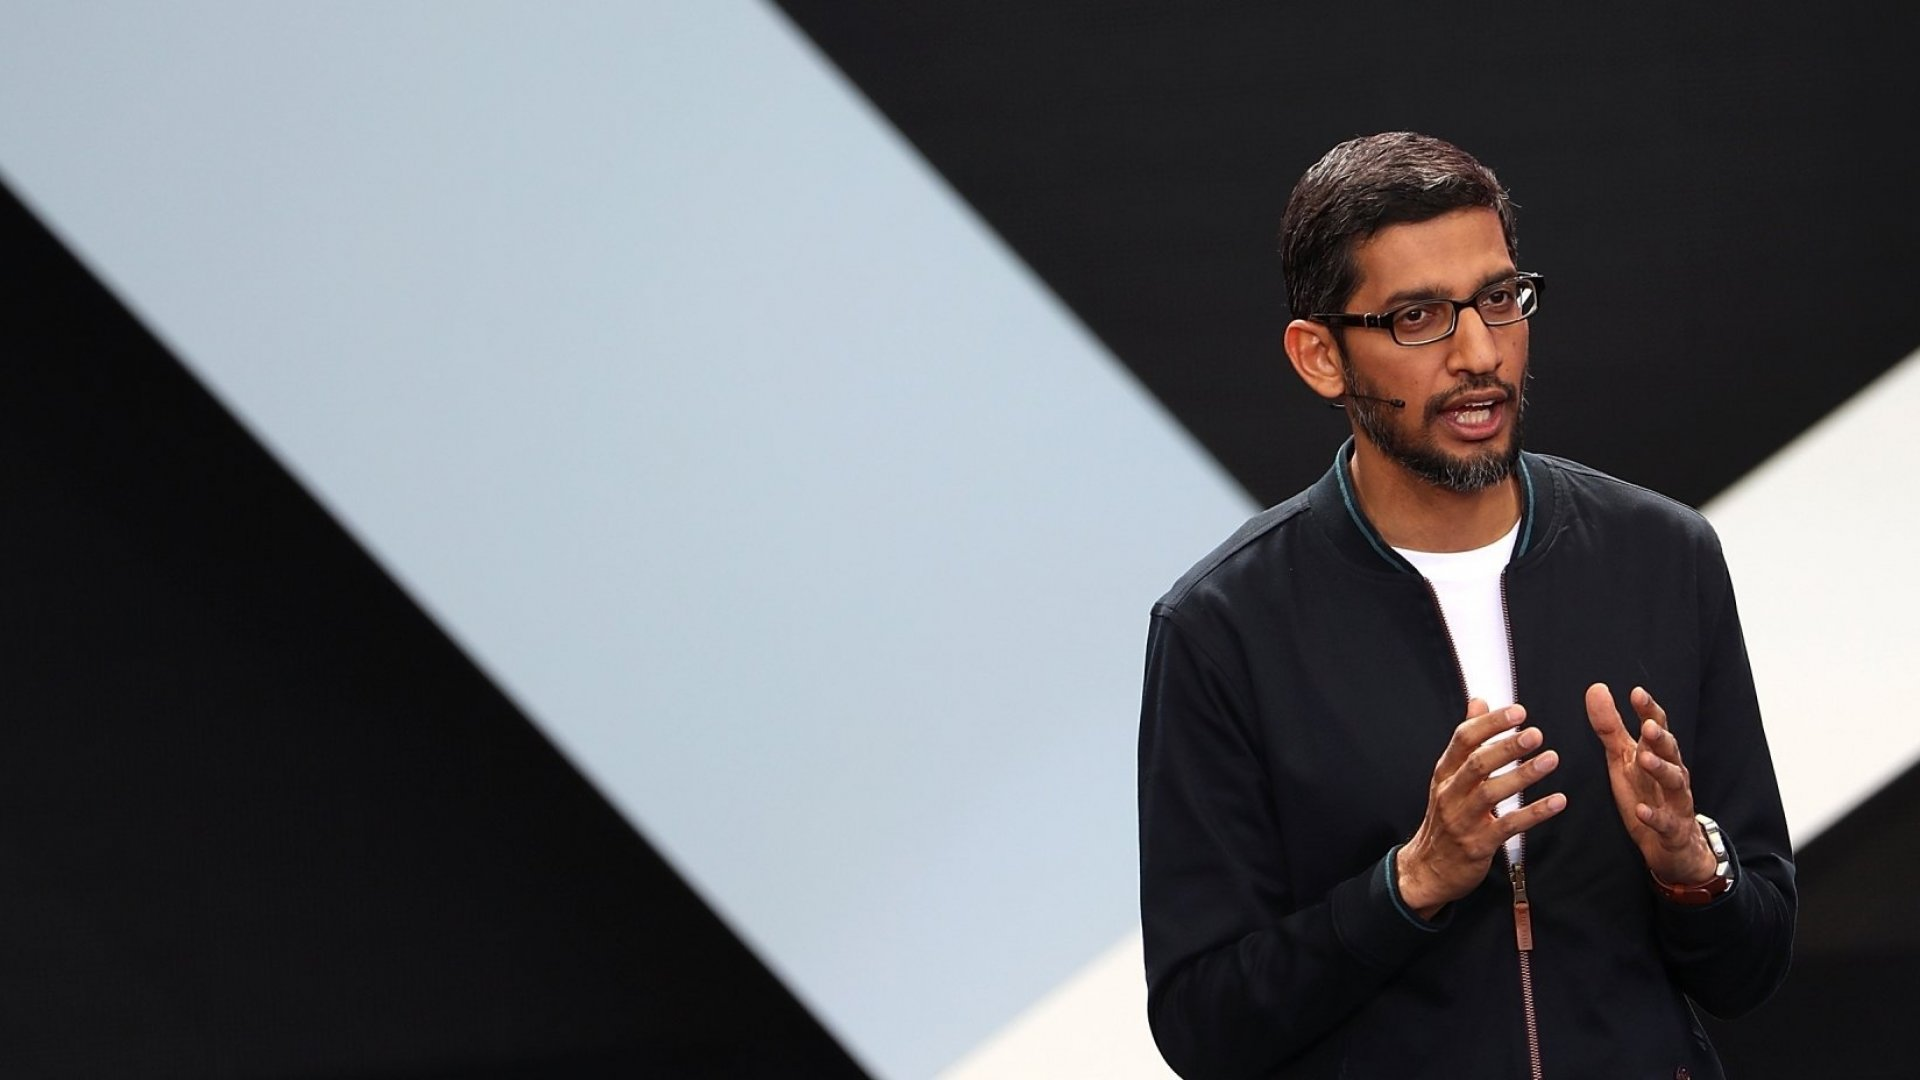 Google CEO Sundar Pichai discusses advances in Google's AI.